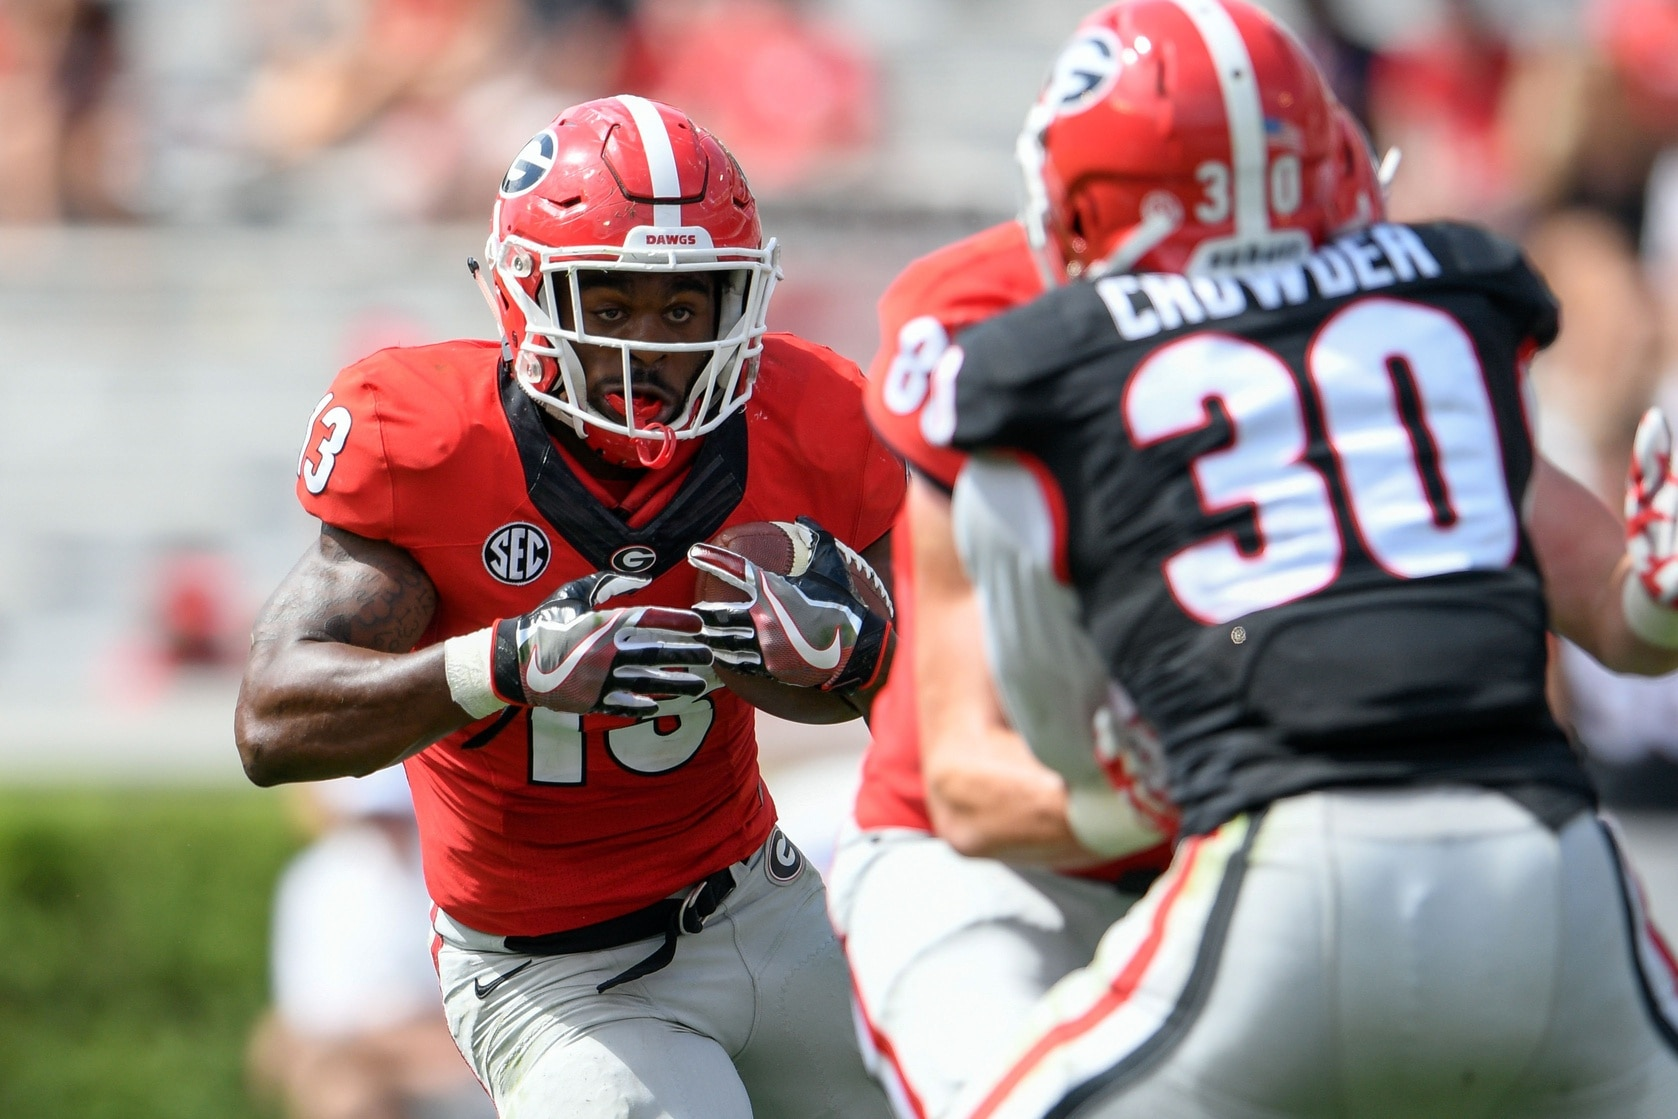 Apr 22, 2017; Athens, GA, USA; Georgia Bulldogs red team running back Elijah Holyfield (13) runs against black team linebacker Tae Crowder (30) during the second half during the Georgia Spring Game at Sanford Stadium. Red defeated Black 25-22. Mandatory Credit: Dale Zanine-USA TODAY Sports